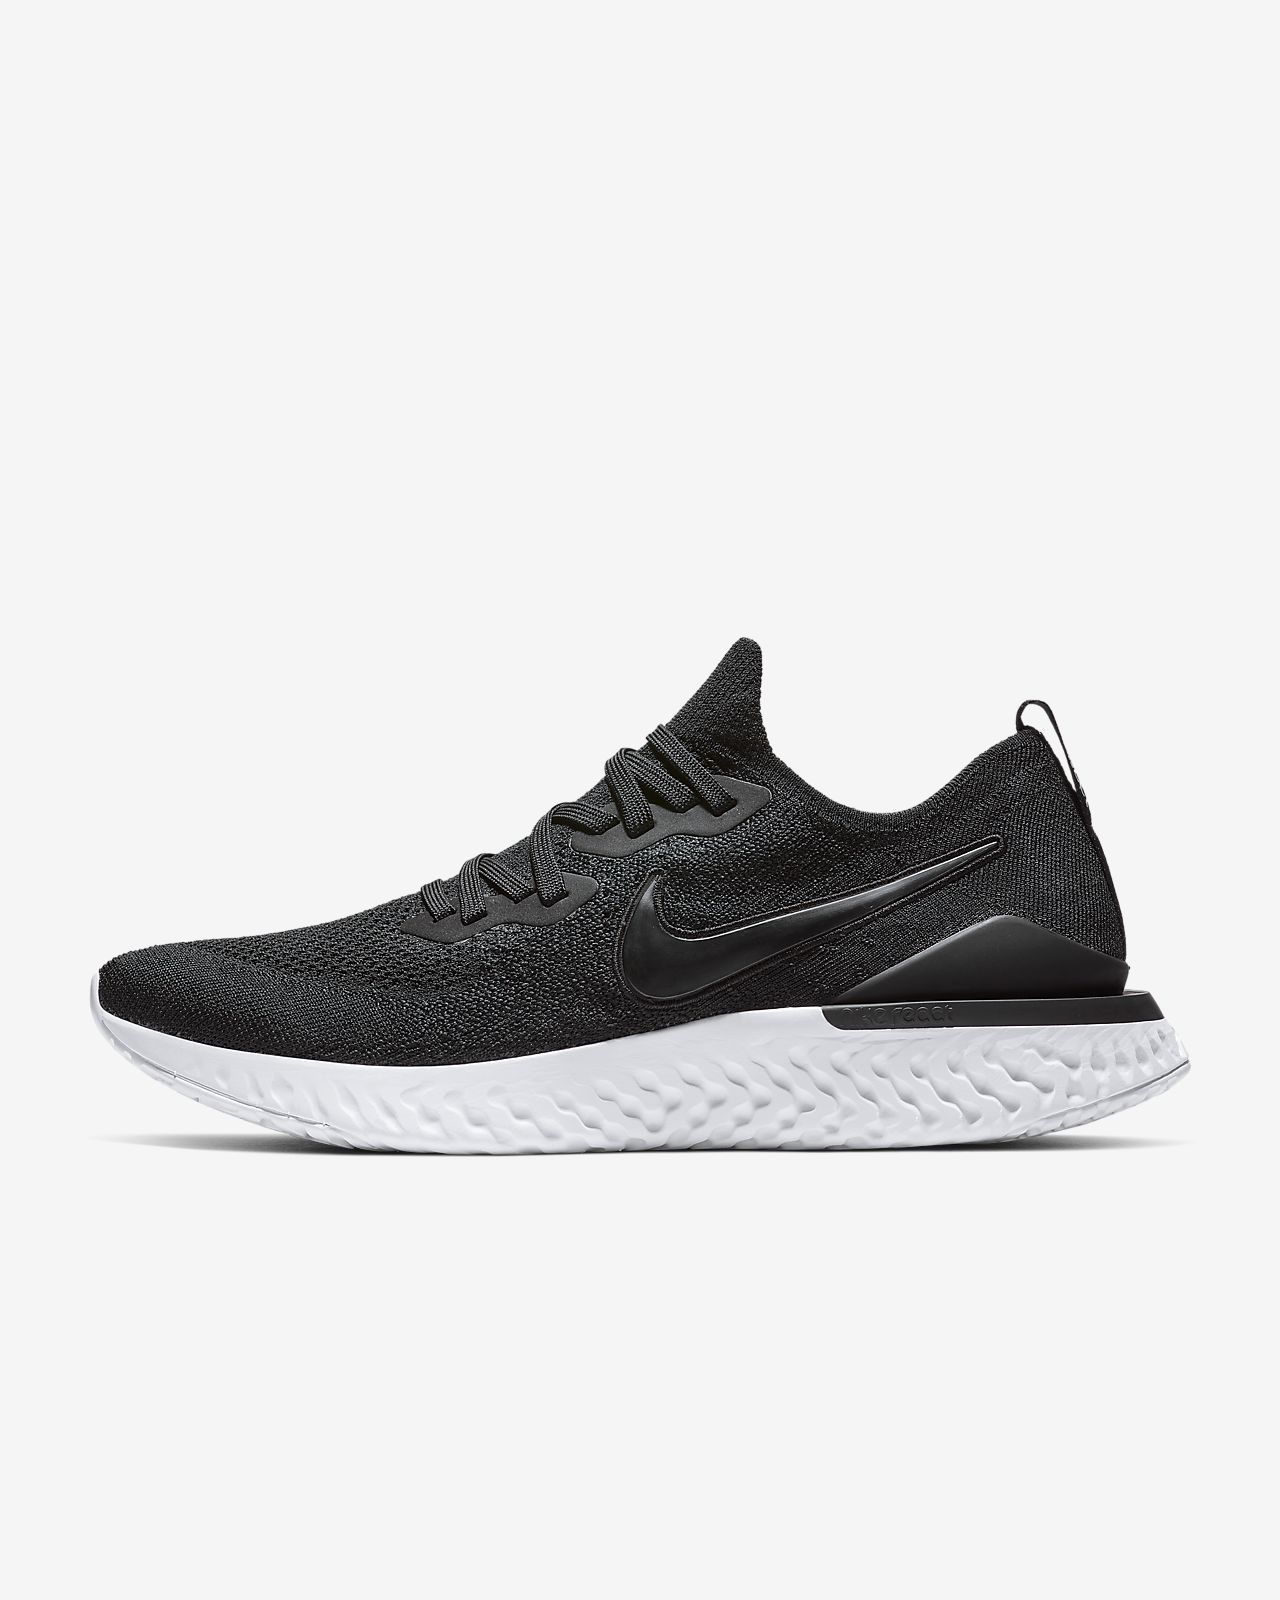 27528d67cec1 Nike Epic React Flyknit 2 Men s Running Shoe. Nike.com AU